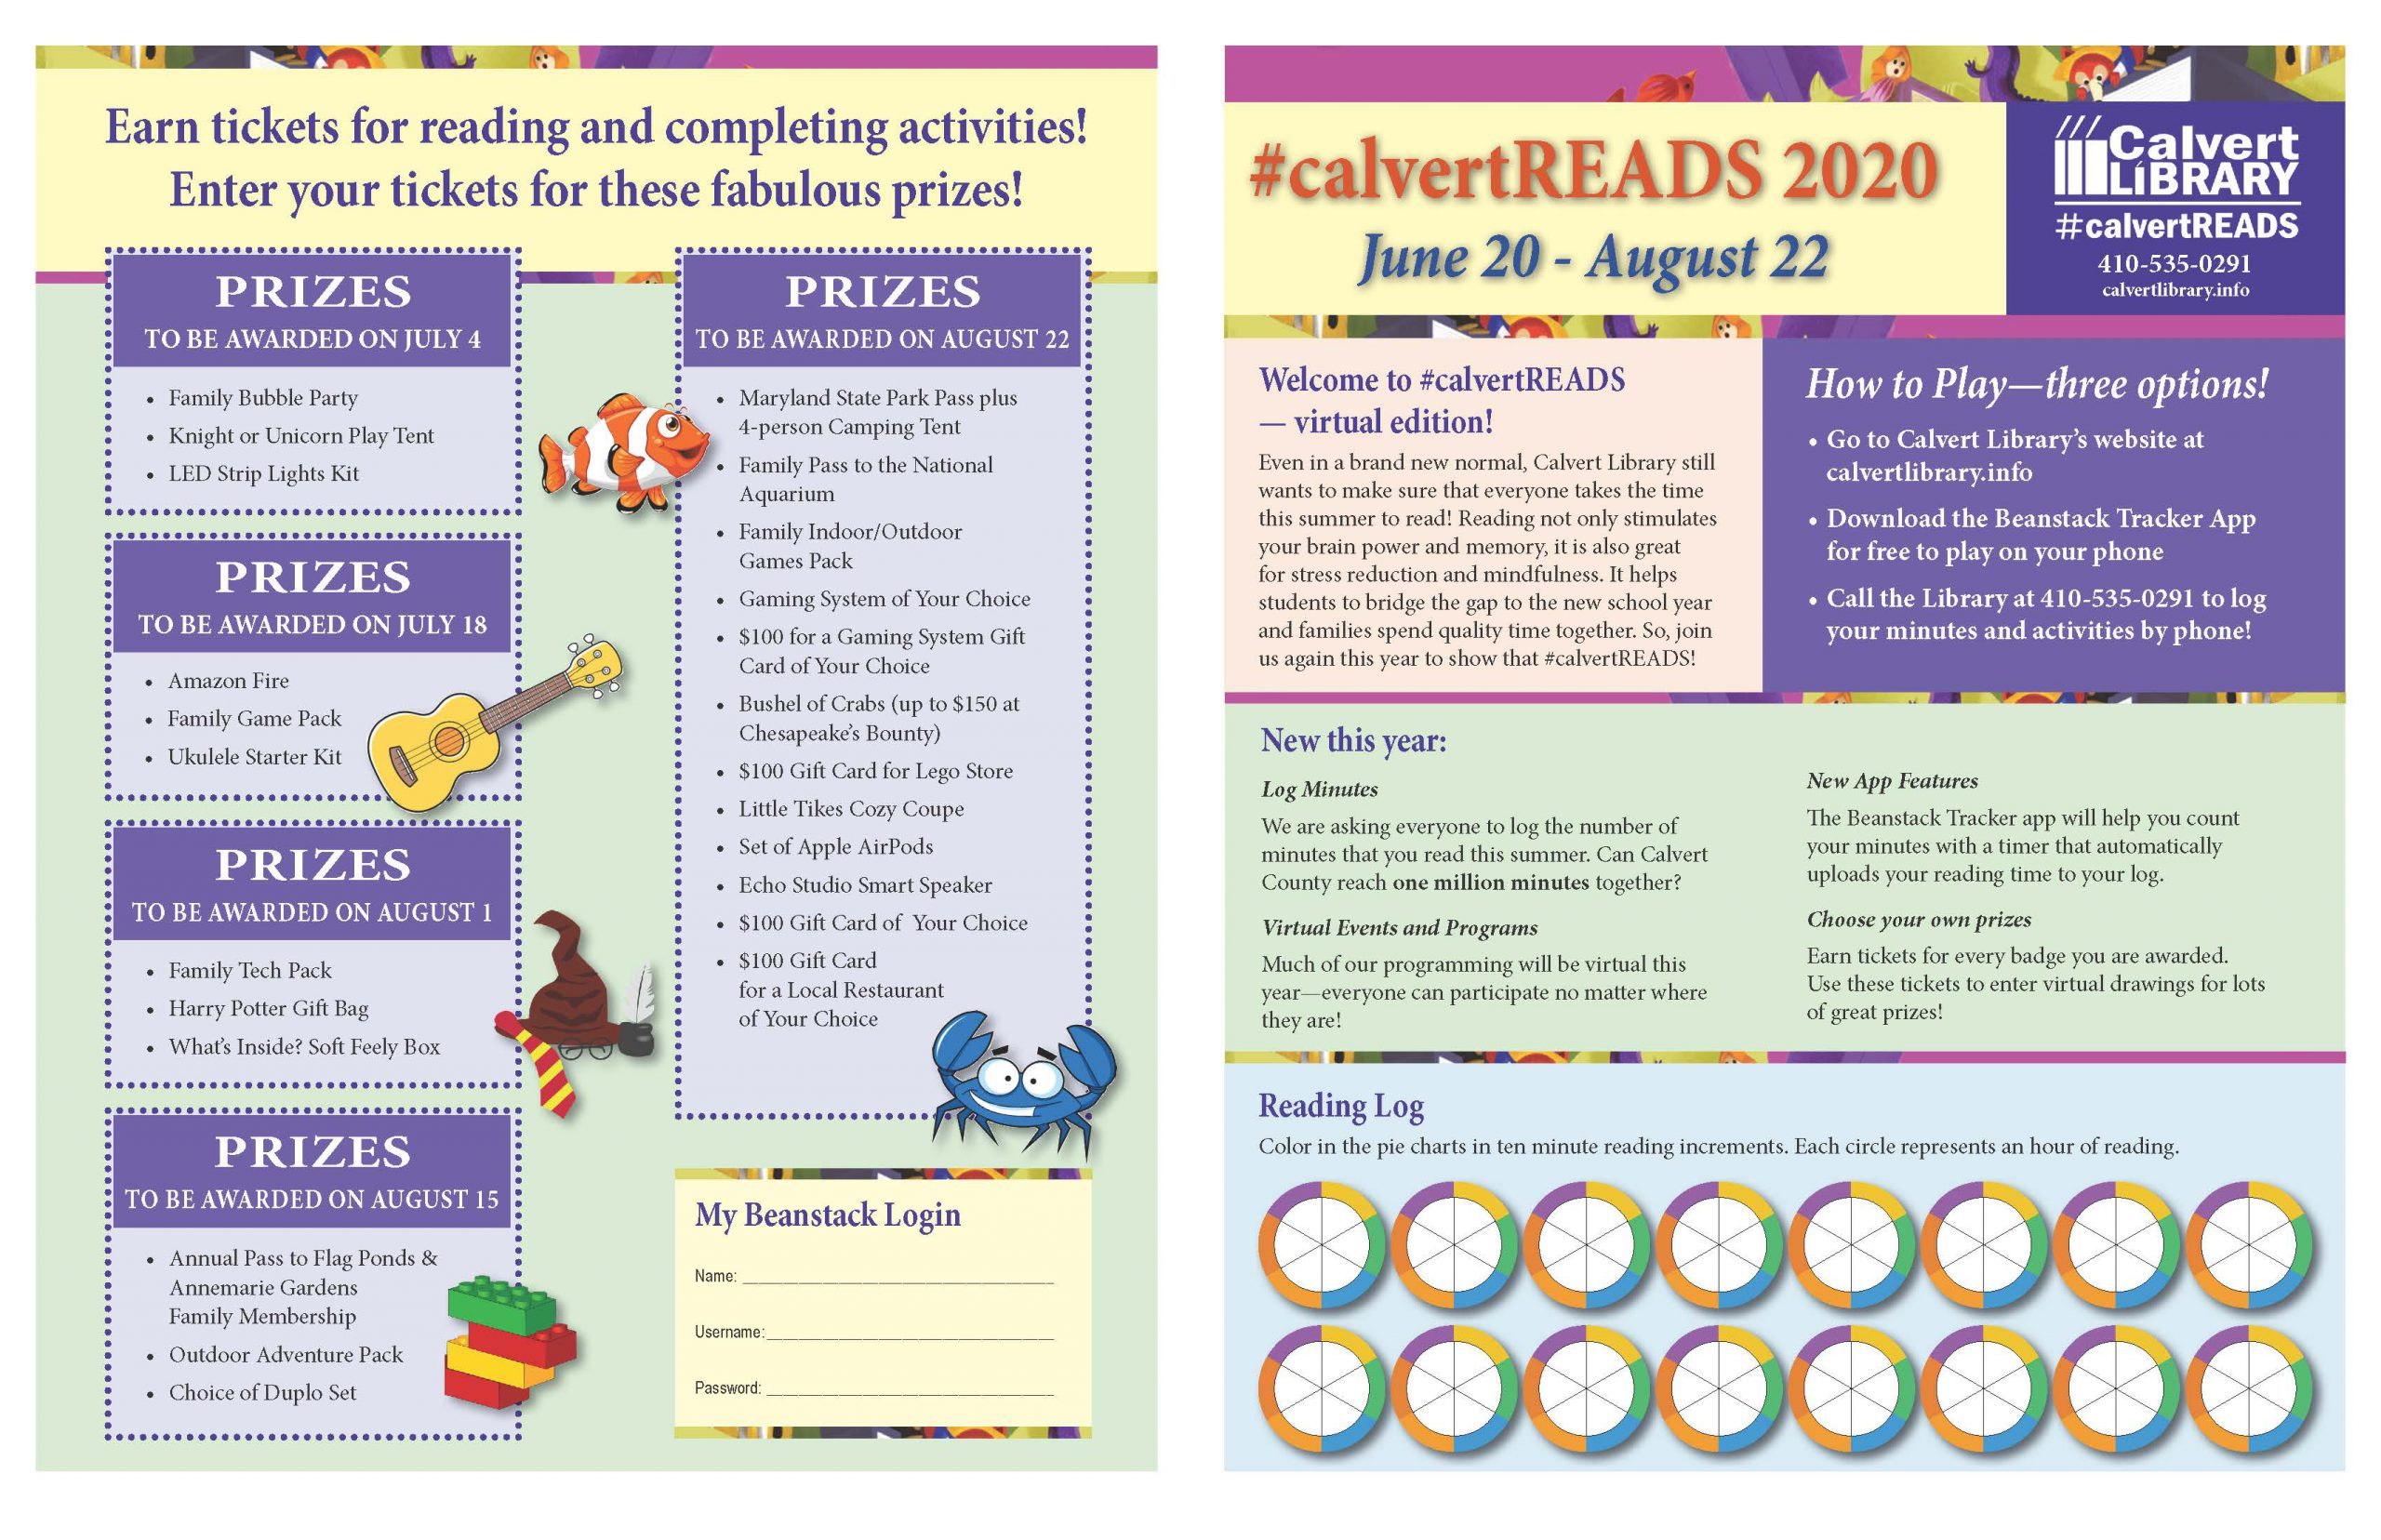 calvertREADS Summer 2020 printable game board